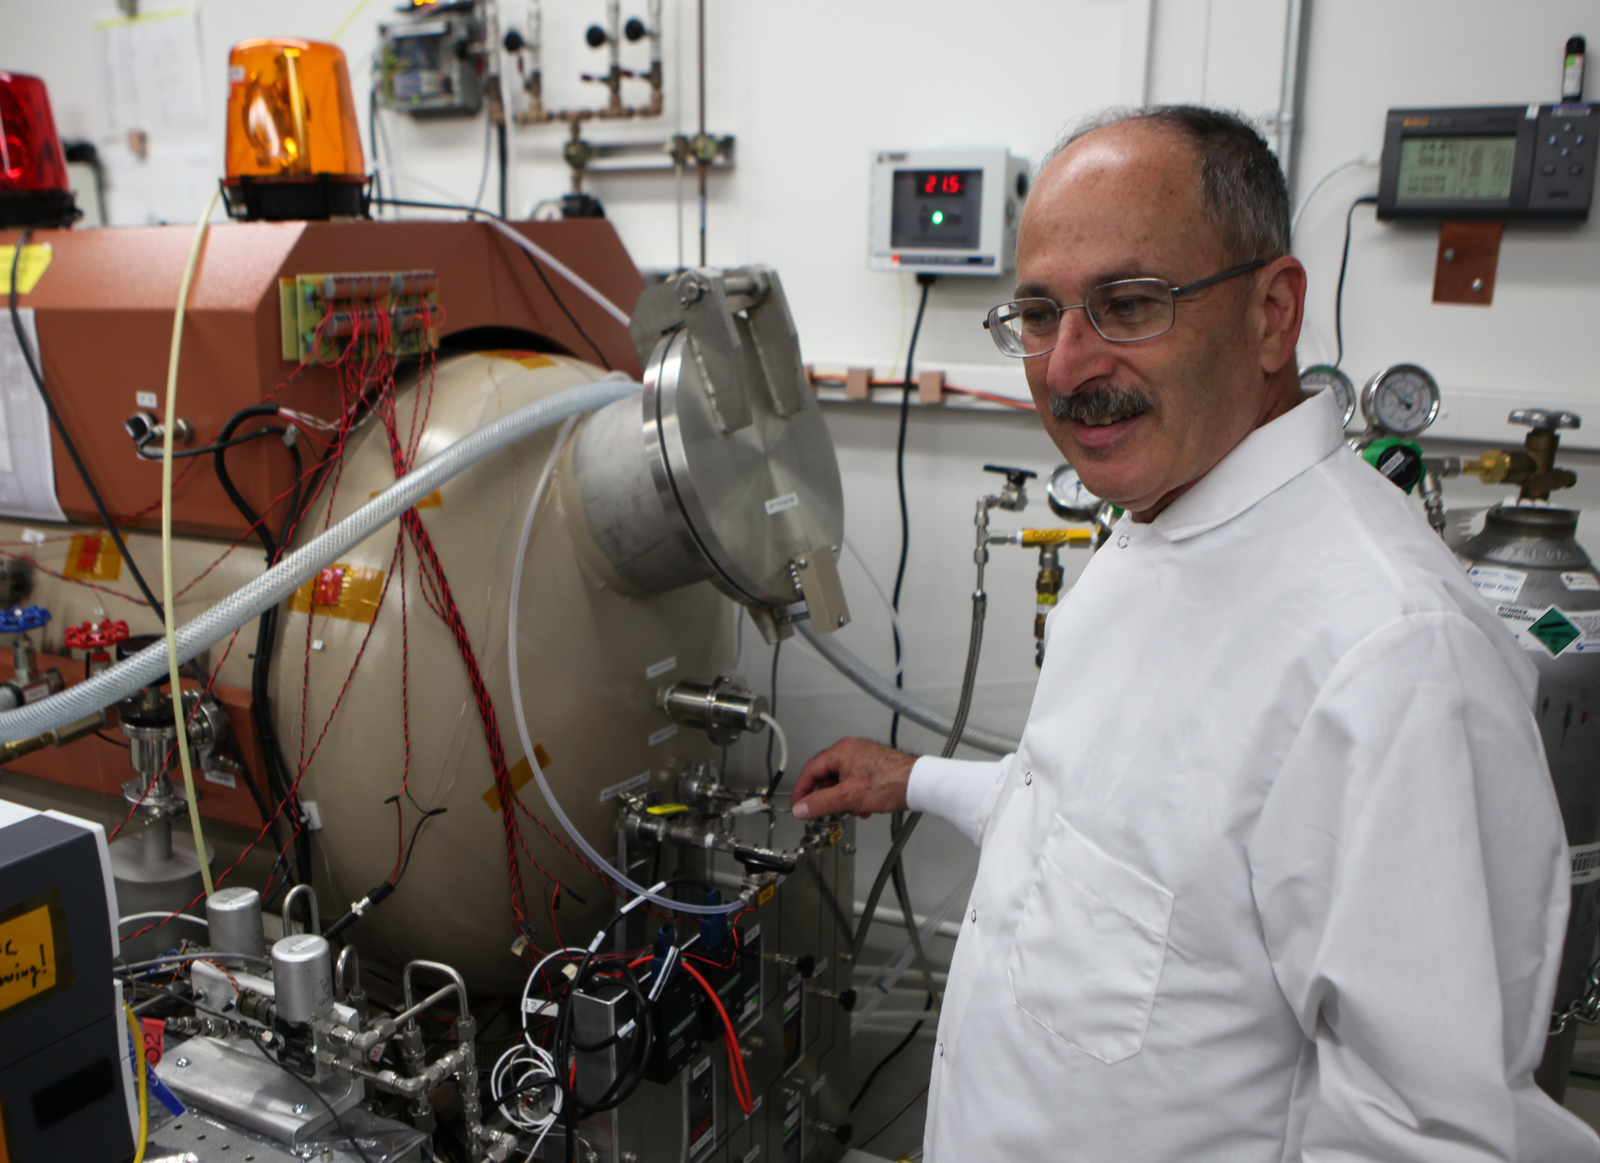 The MOXIE investigation on NASA's Mars 2020 rover will extract oxygen from the Martian atmosphere. In this image, MOXIE Principal Investigator Michael Hecht, of the Massachusetts Institute of Technology, Cambridge, is in the MOXIE laboratory at NASA's Jet Propulsion Laboratory, Pasadena, California.